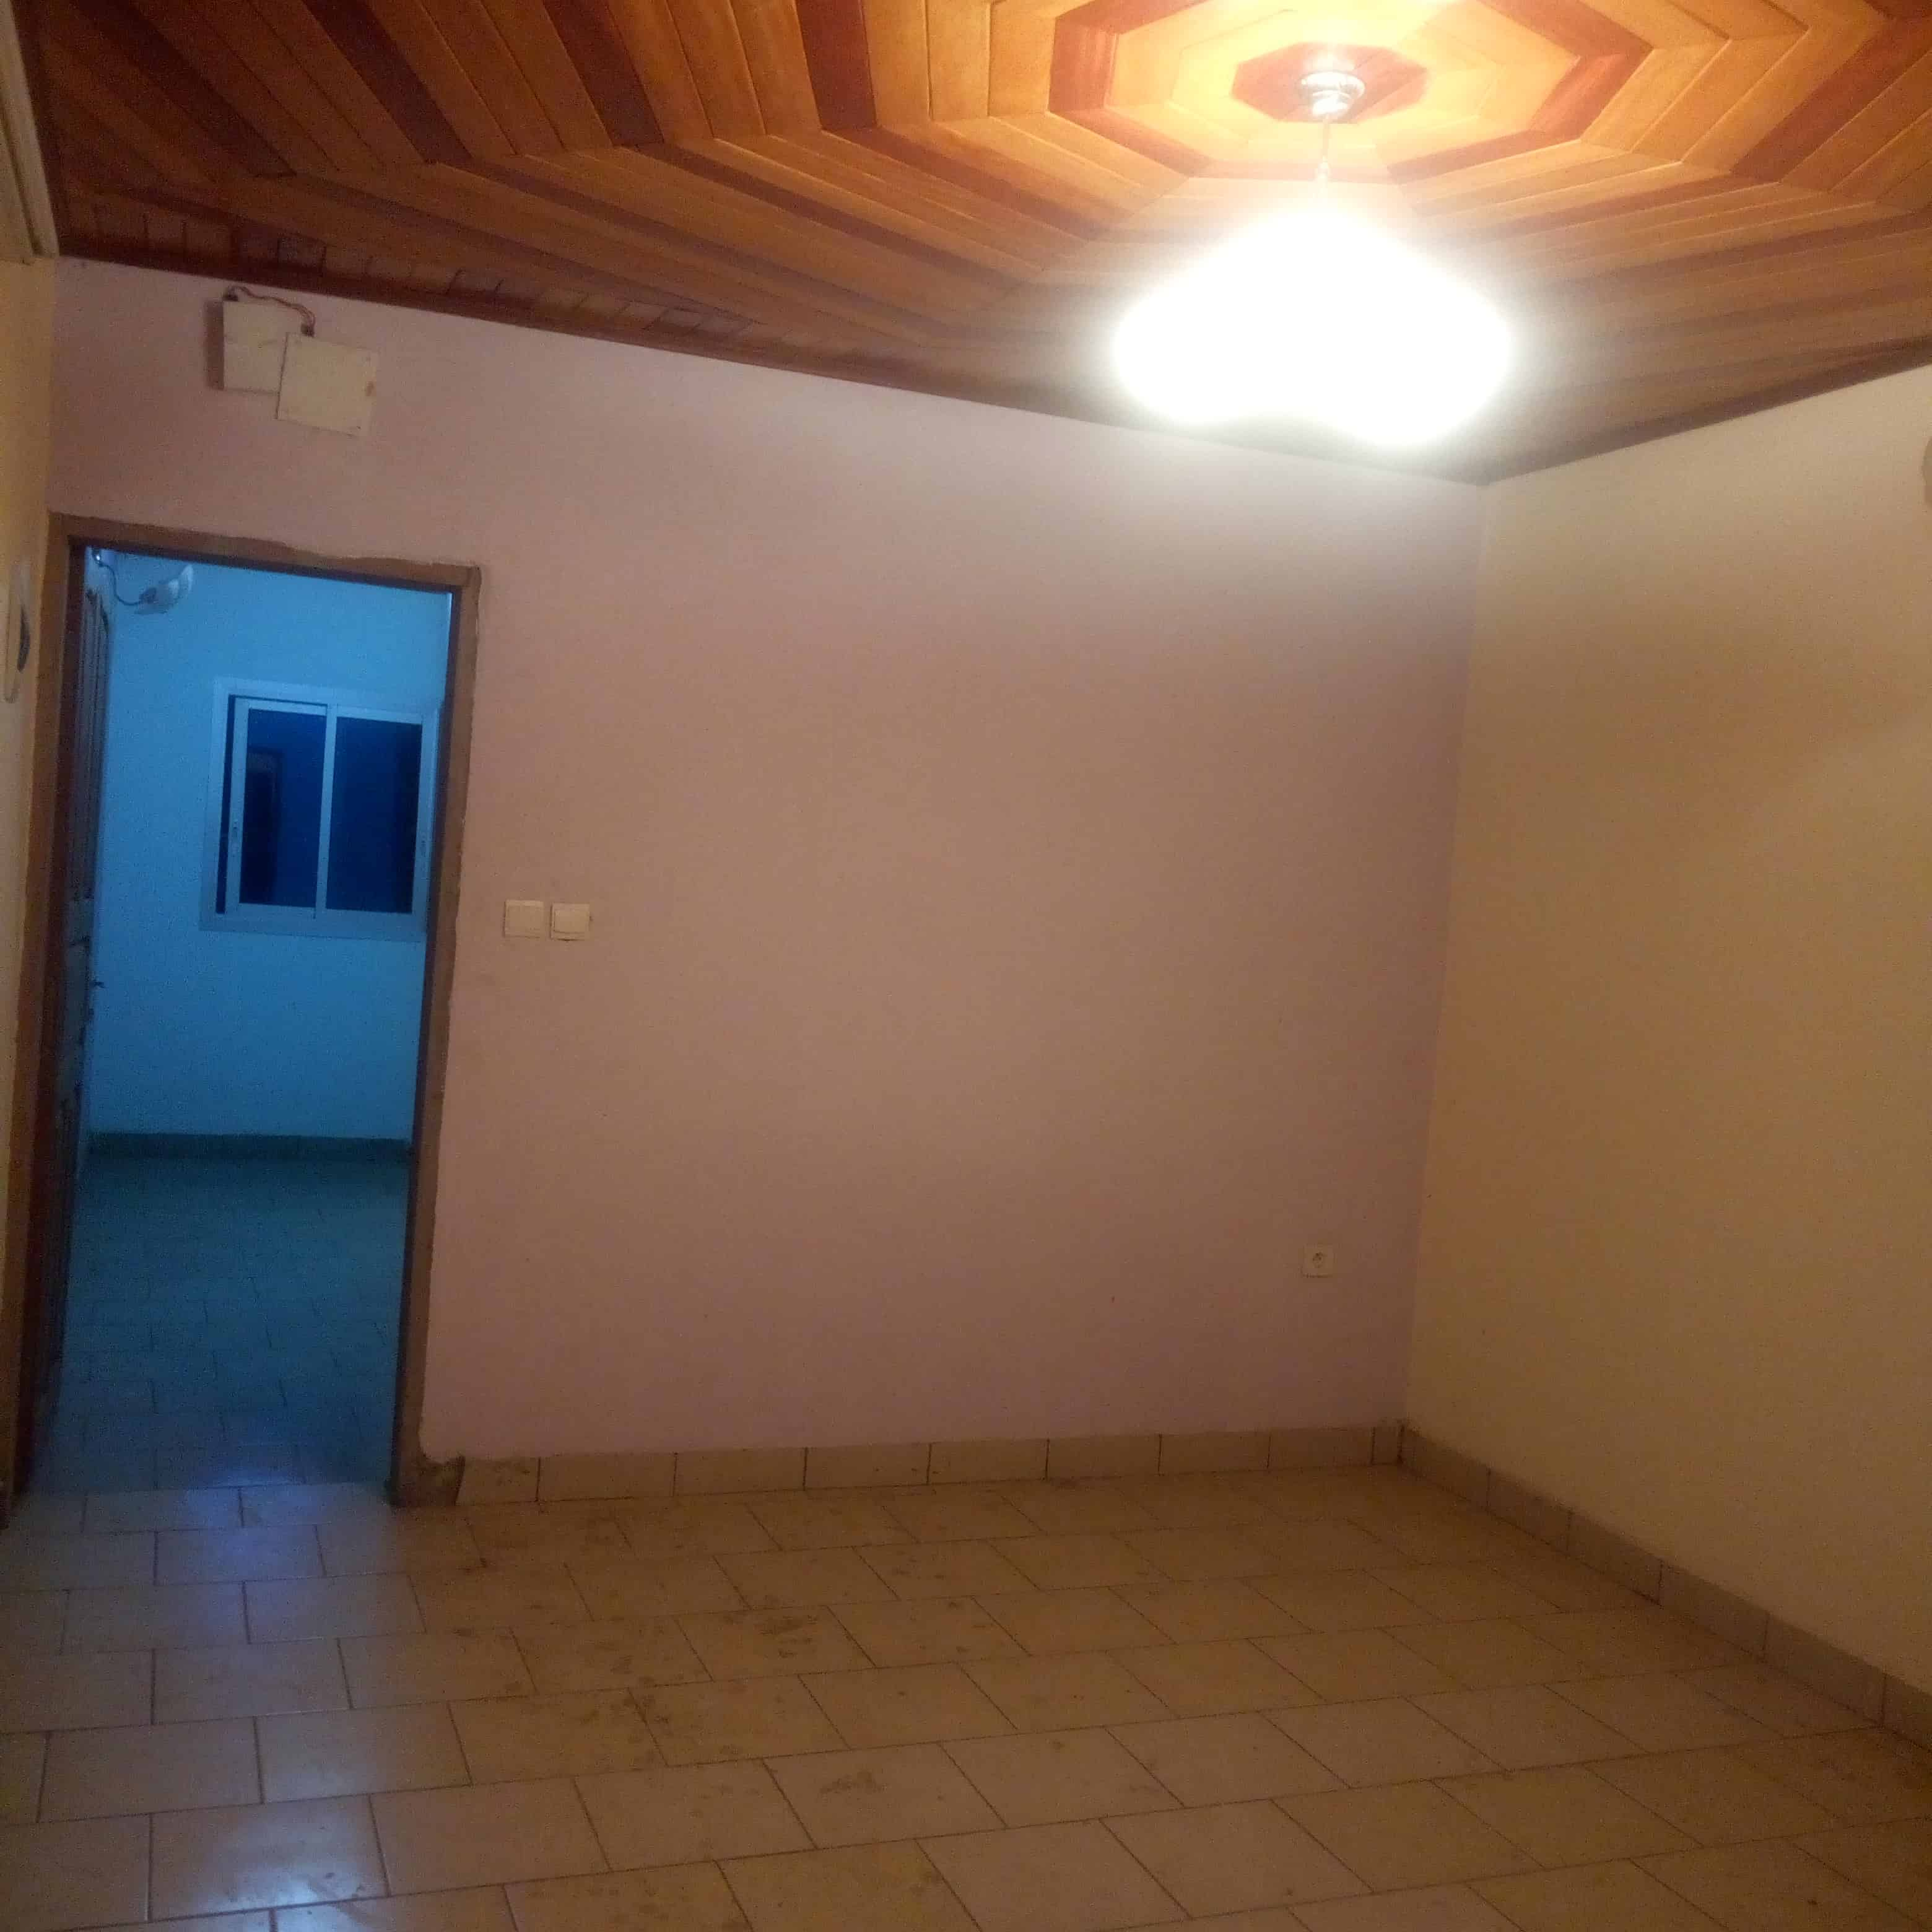 Apartment to rent - Douala, Makepe, Rond pauleng - 1 living room(s), 2 bedroom(s), 1 bathroom(s) - 70 000 FCFA / month